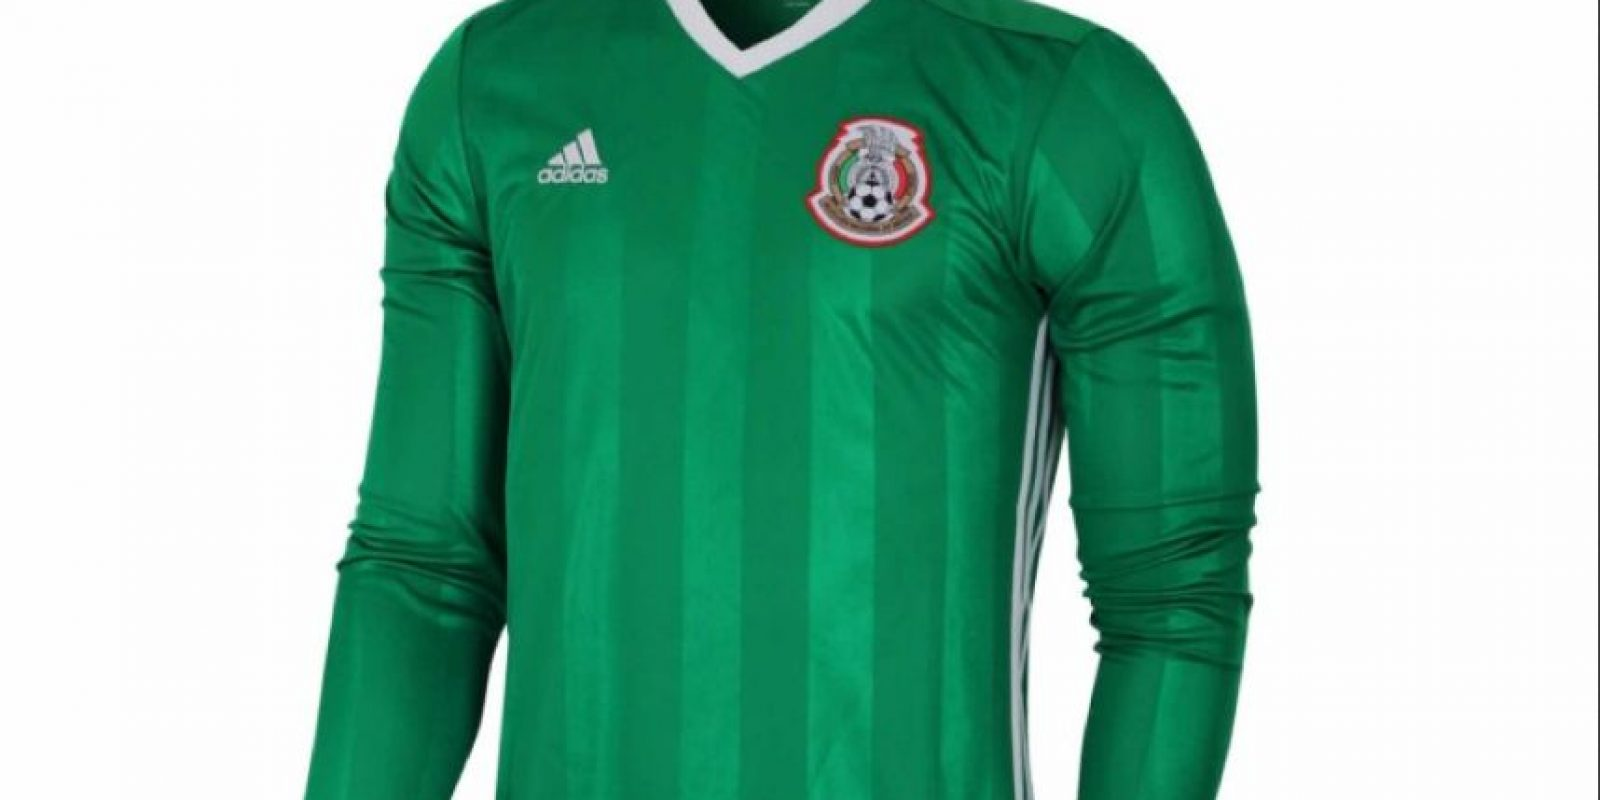 Foto: Tomado de https://www.tienda.miseleccion.mx/product/42912-jersey-adidas-futbol-seleccion-mexicana-local-fan-1617-manga-larga.html#/15-color-verde/1-talla-ch